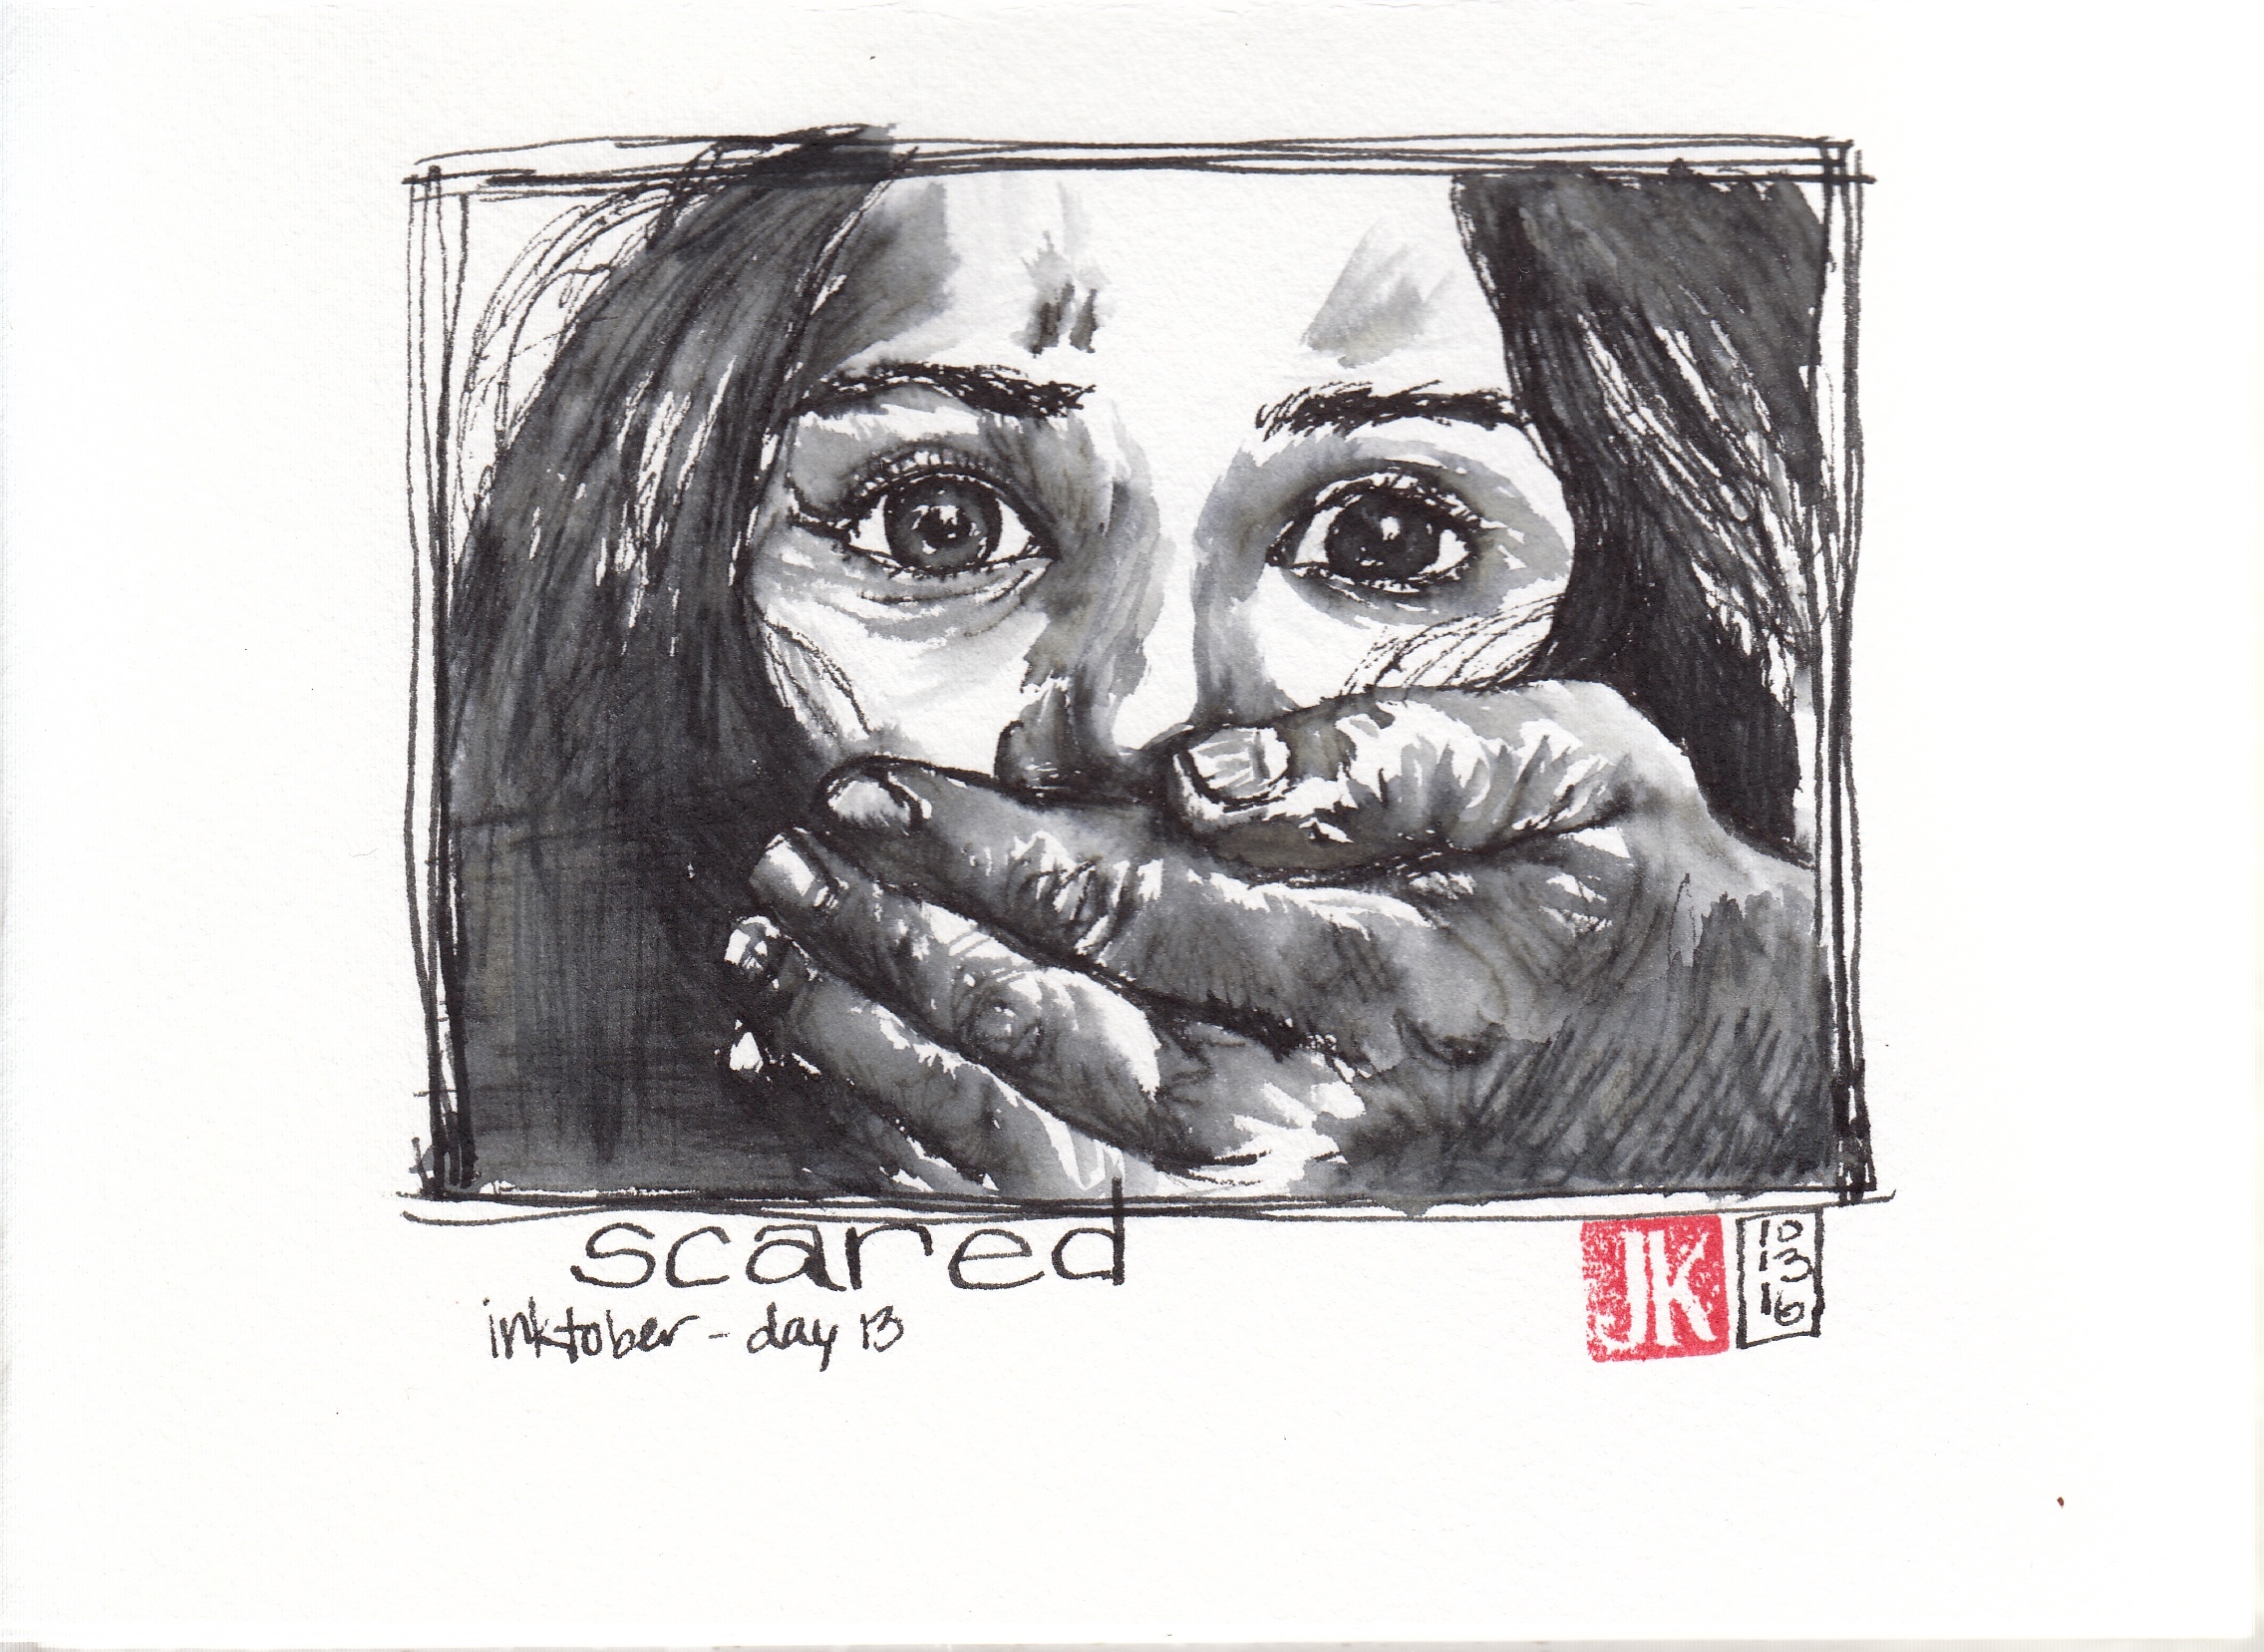 Day 13 - Scared